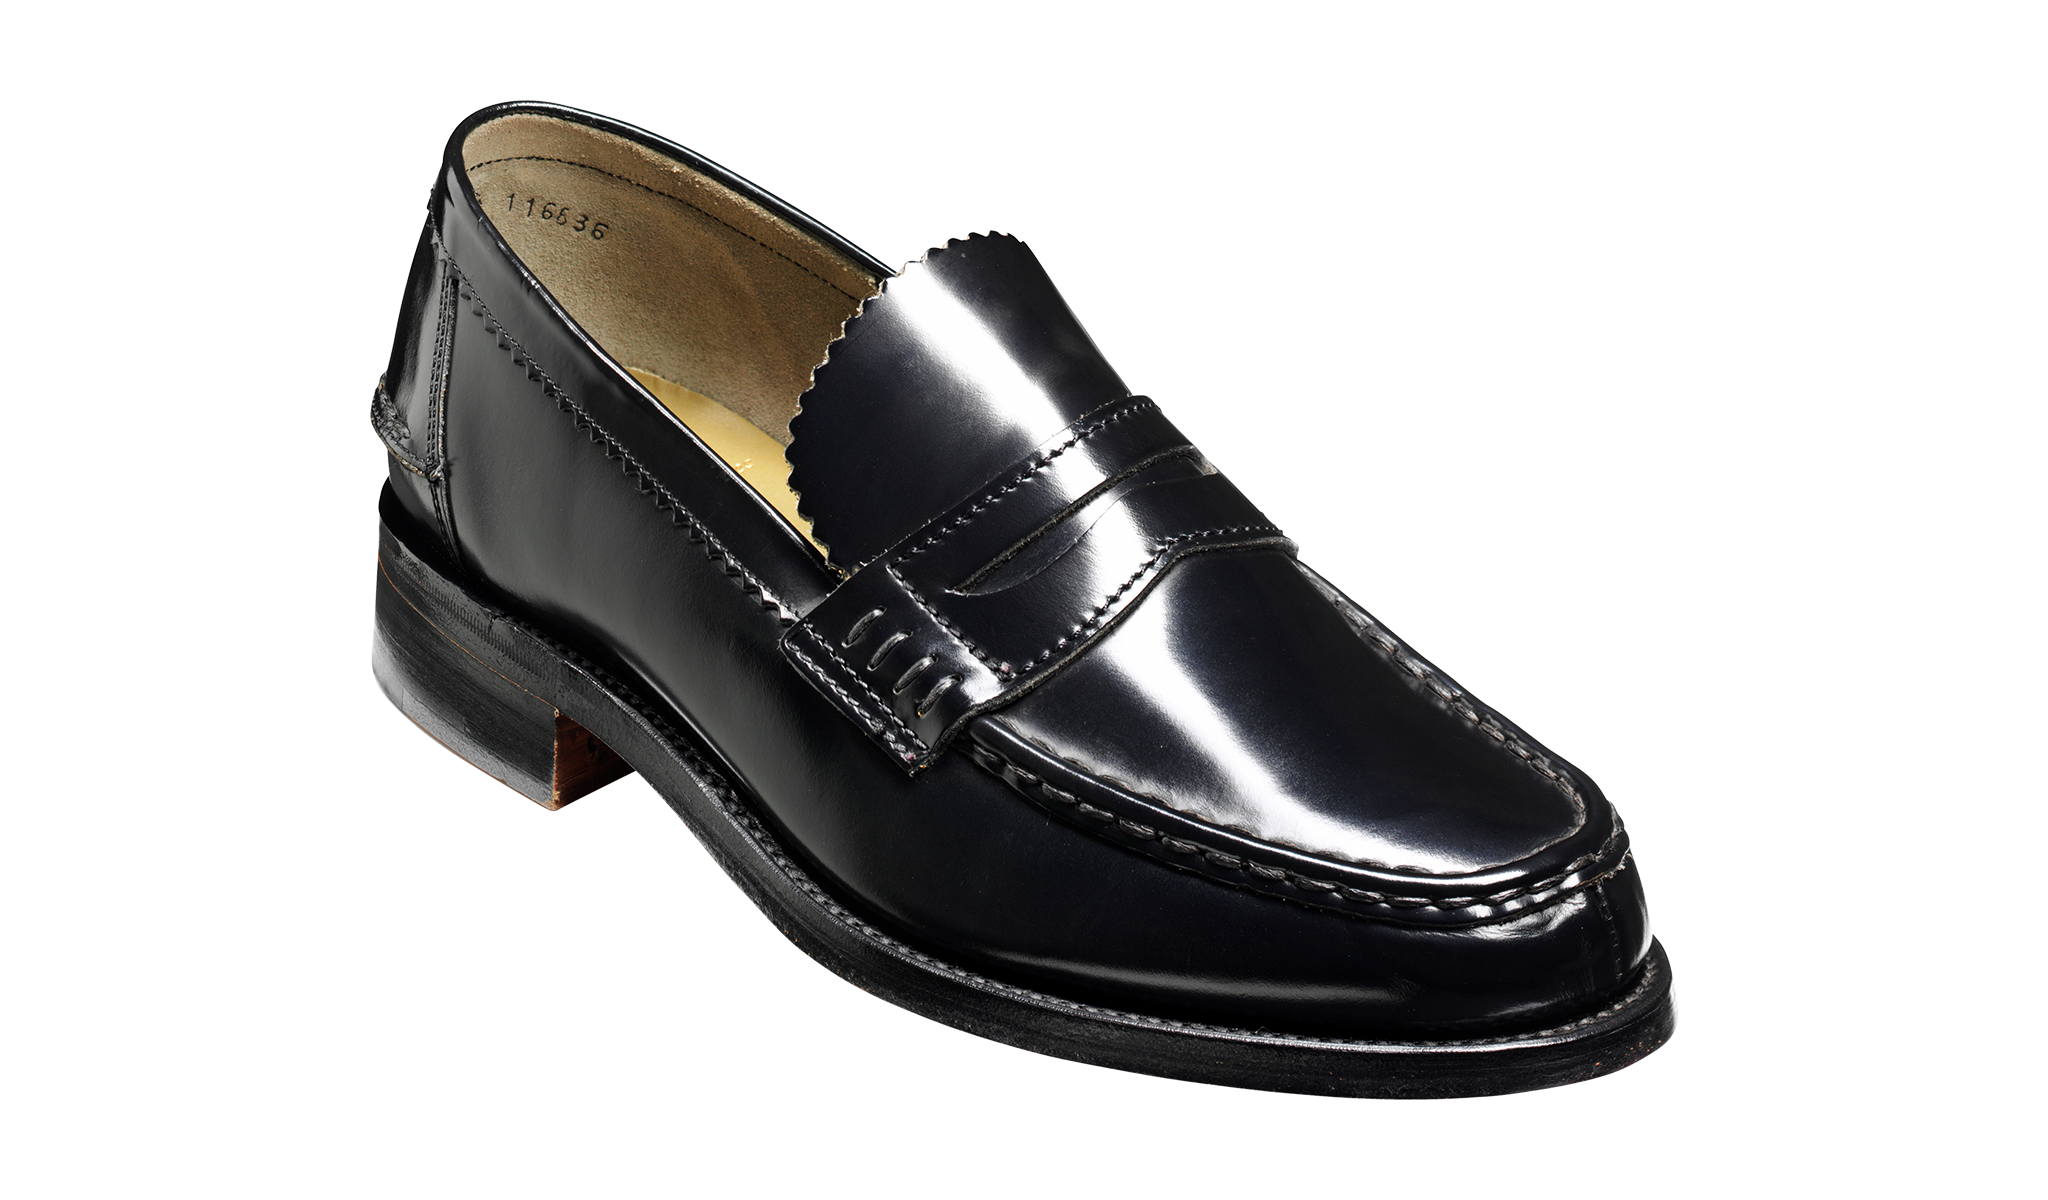 Caruso - A black men's loafer by Barker Shoes.